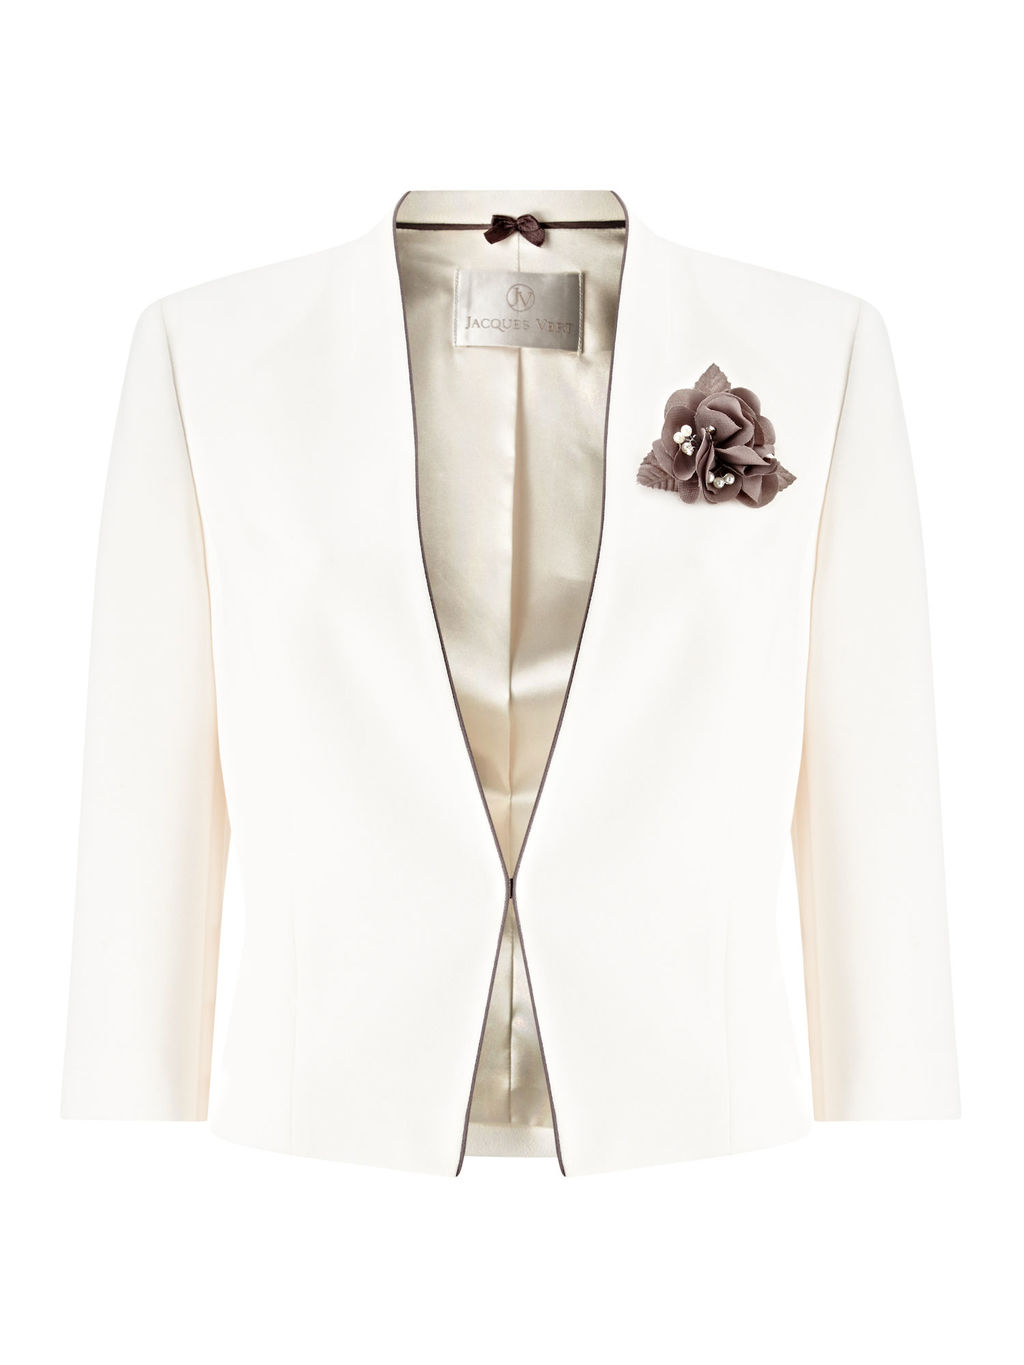 Contrast Binding Crepe Jacket, Ivory - pattern: plain; style: single breasted blazer; collar: round collar/collarless; predominant colour: ivory/cream; secondary colour: taupe; length: standard; fit: tailored/fitted; fibres: polyester/polyamide - 100%; occasions: occasion; sleeve length: 3/4 length; sleeve style: standard; texture group: crepes; collar break: medium; pattern type: fabric; embellishment: corsage; season: s/s 2016; wardrobe: event